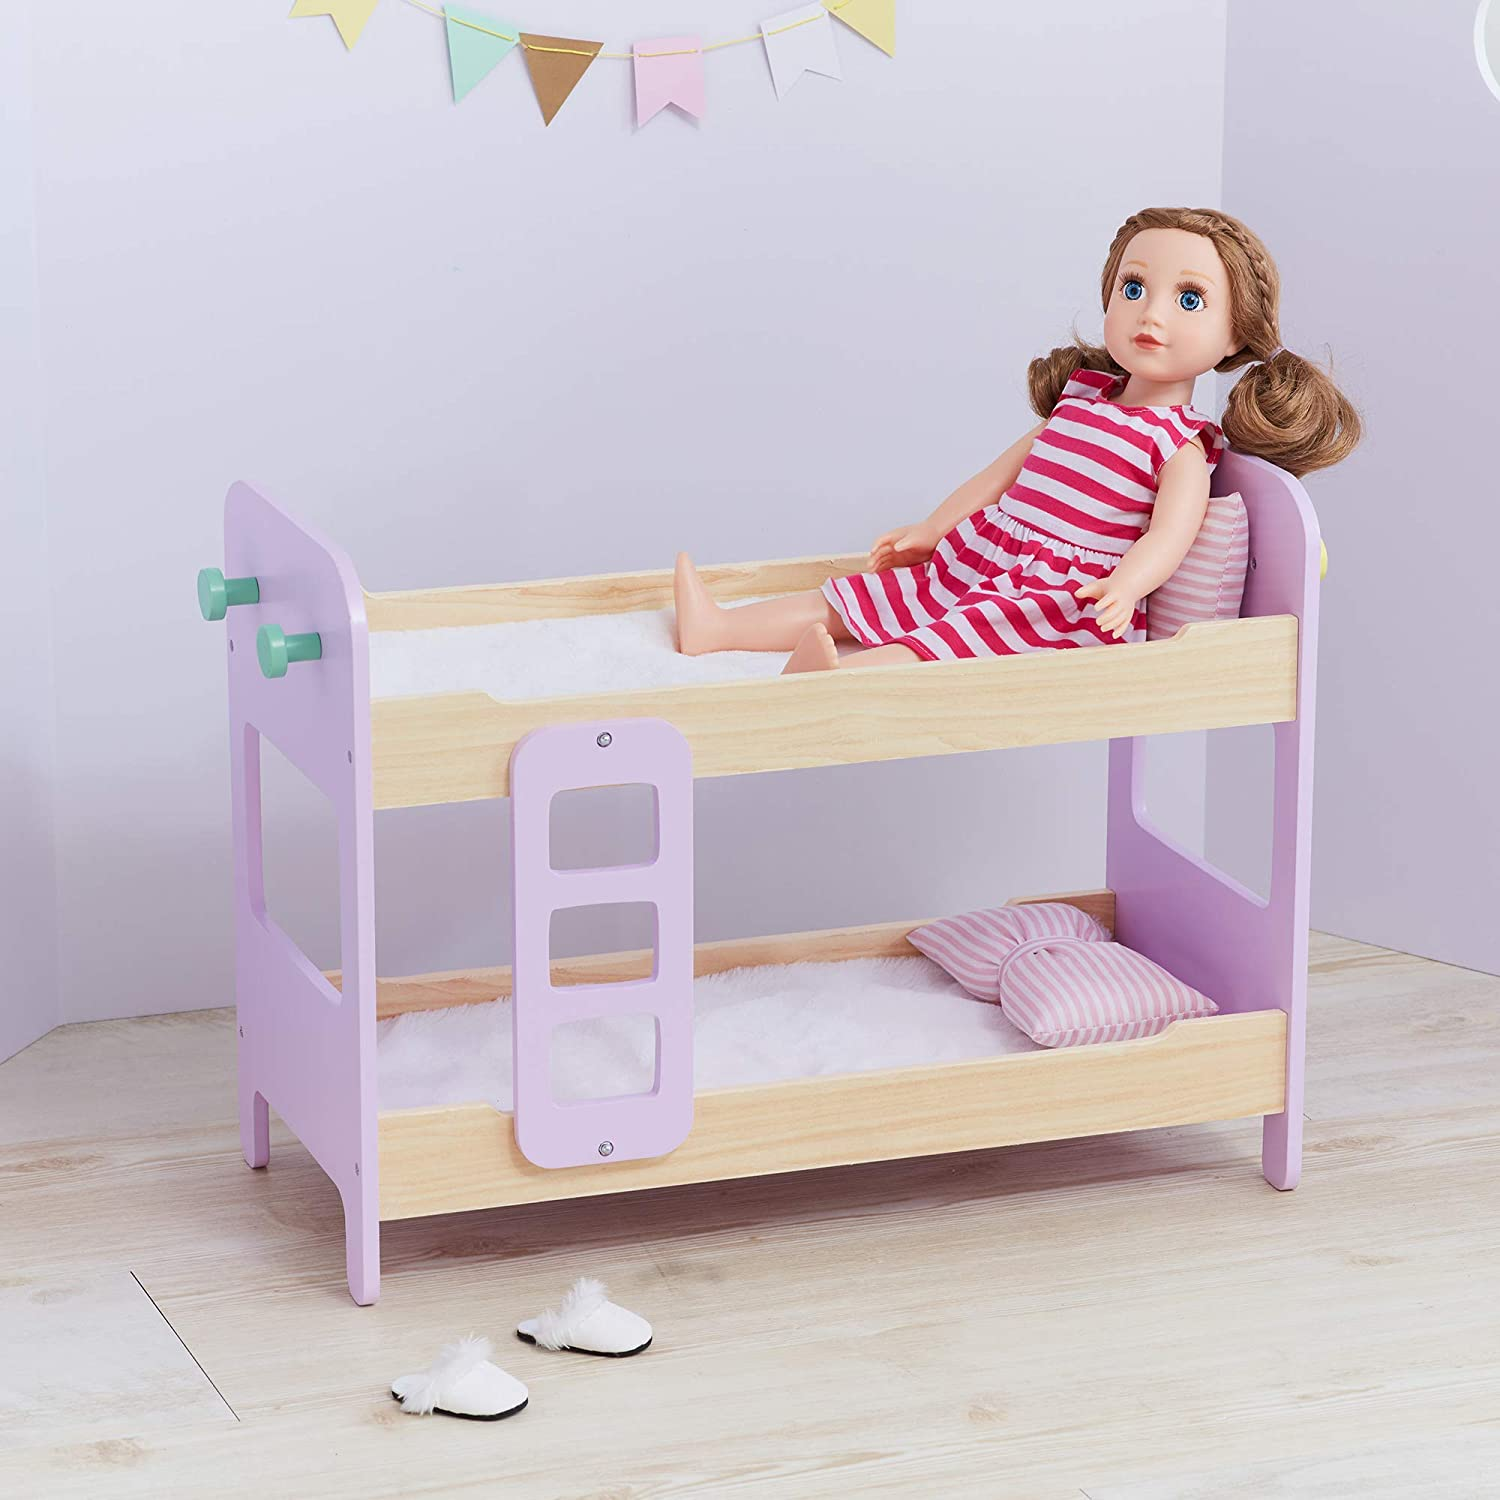 Buy Olivia S Little World Modern Nordic Princess Doll Bunk Bed Online At Low Prices In India Amazon In